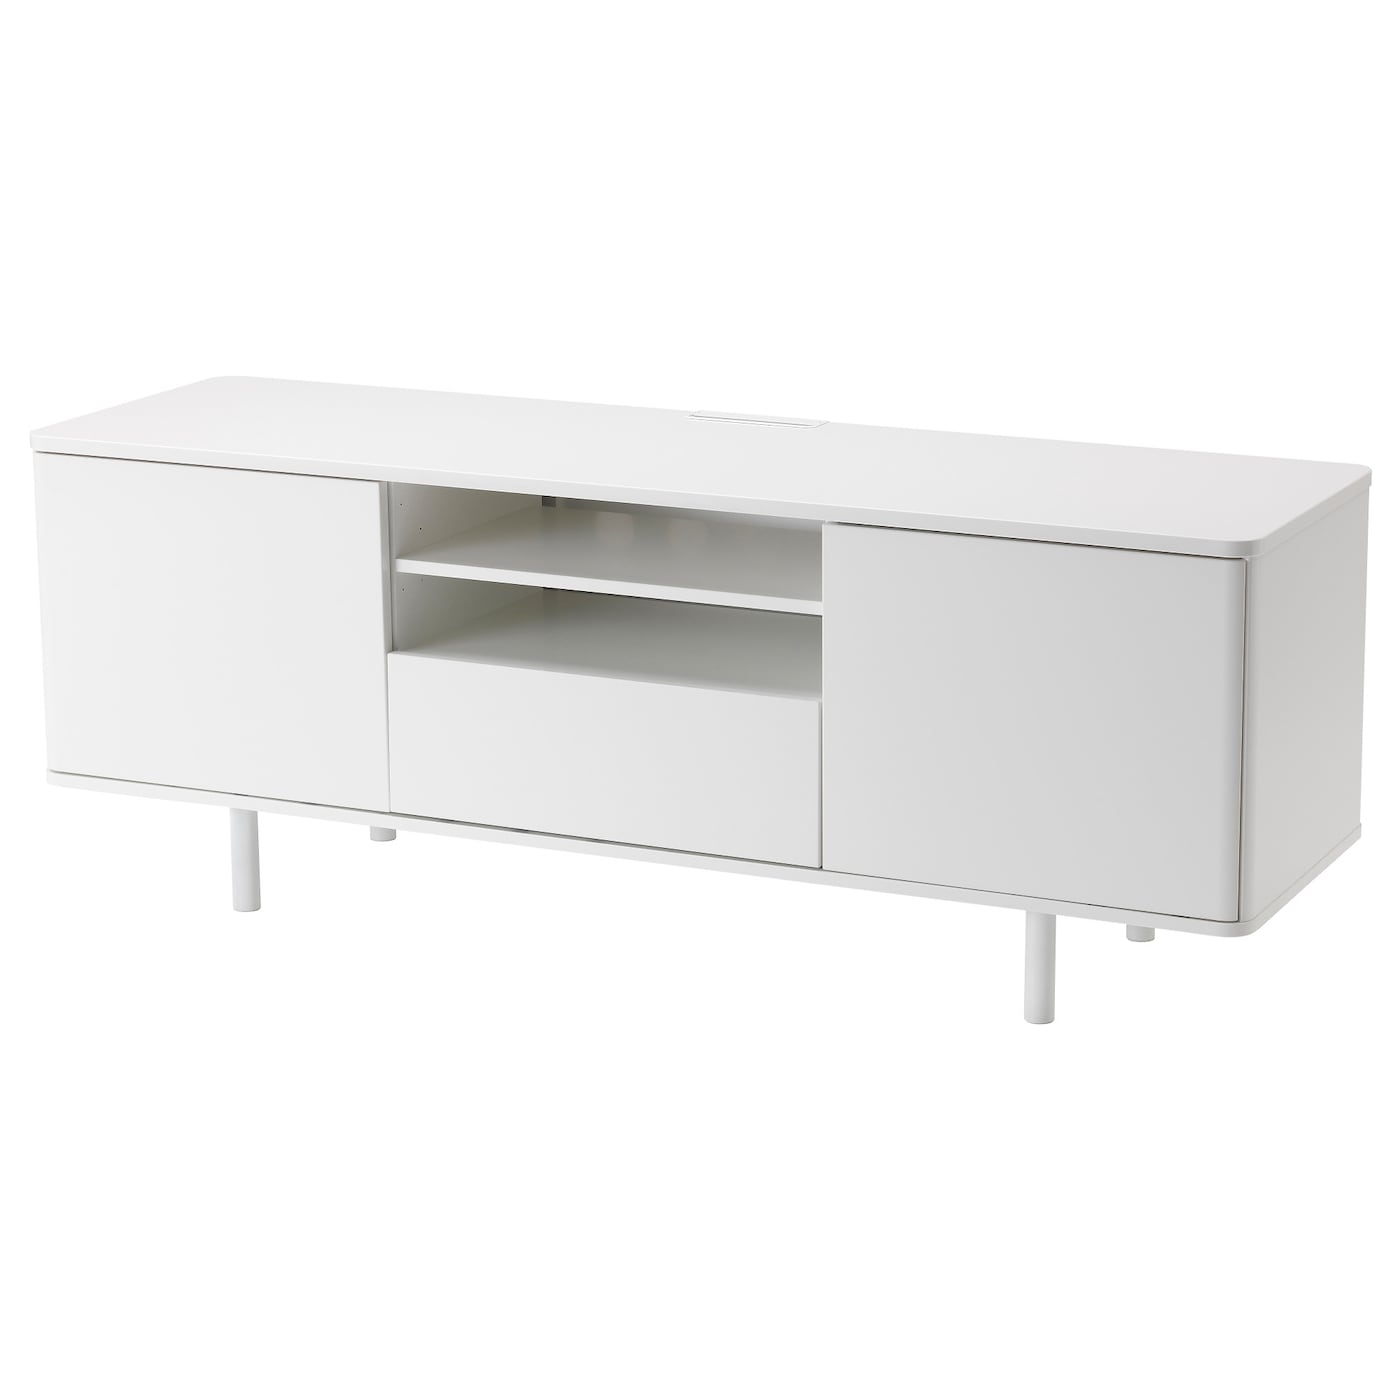 Mostorp Banc Tv Brillant Blanc 159×46 Cm Ikea # Meuble Tv Ikea Bous Blanc